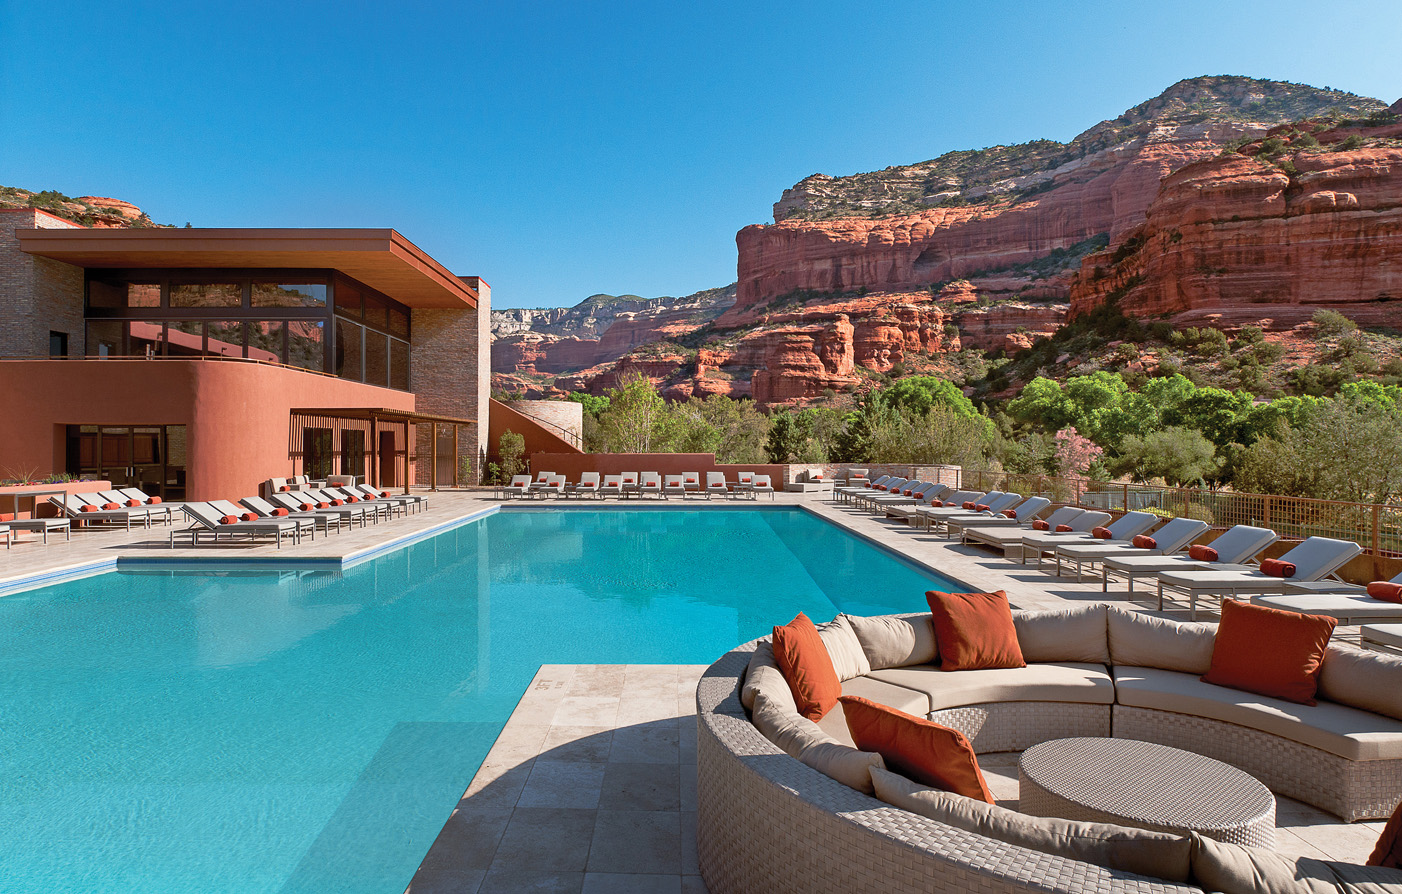 Enchantment resort sedona arizona preferred hotels for Motel luxury